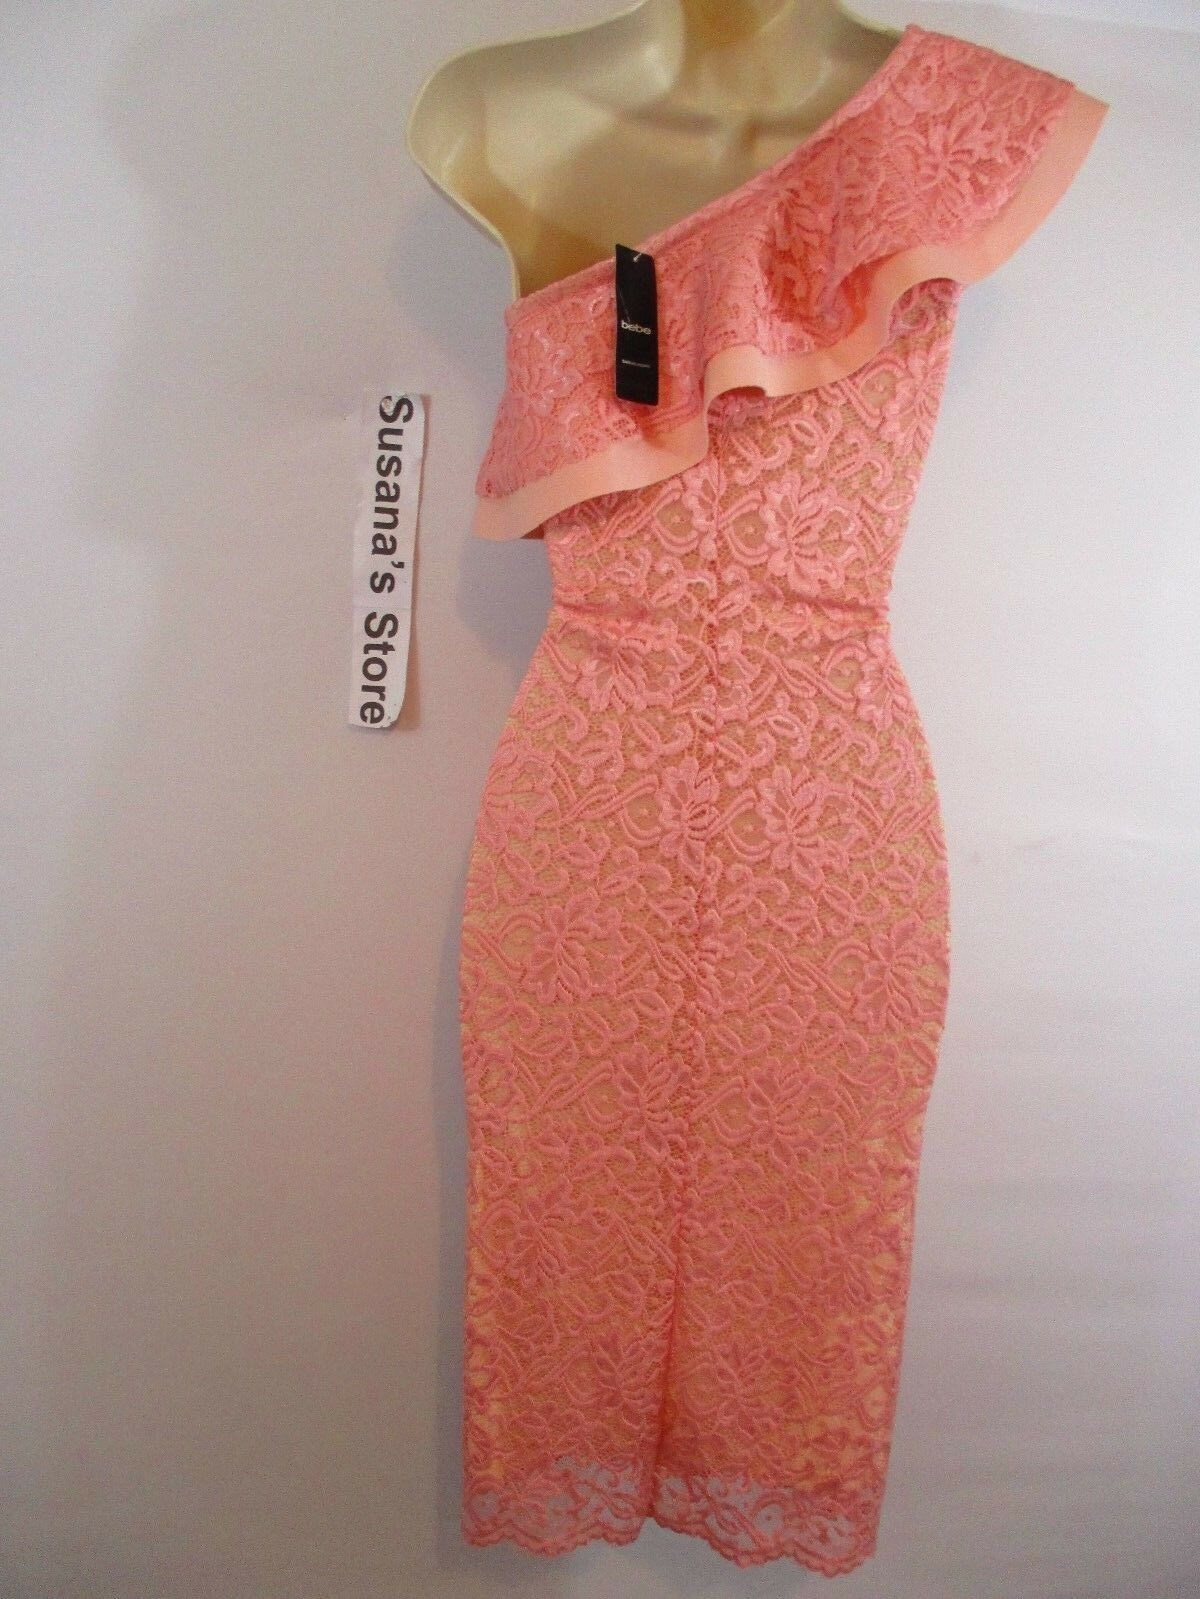 NWT bebe Lace Lace Lace One Shoulder Dress SIZE M Fancy-event, elegant and sexy  113.00 538936